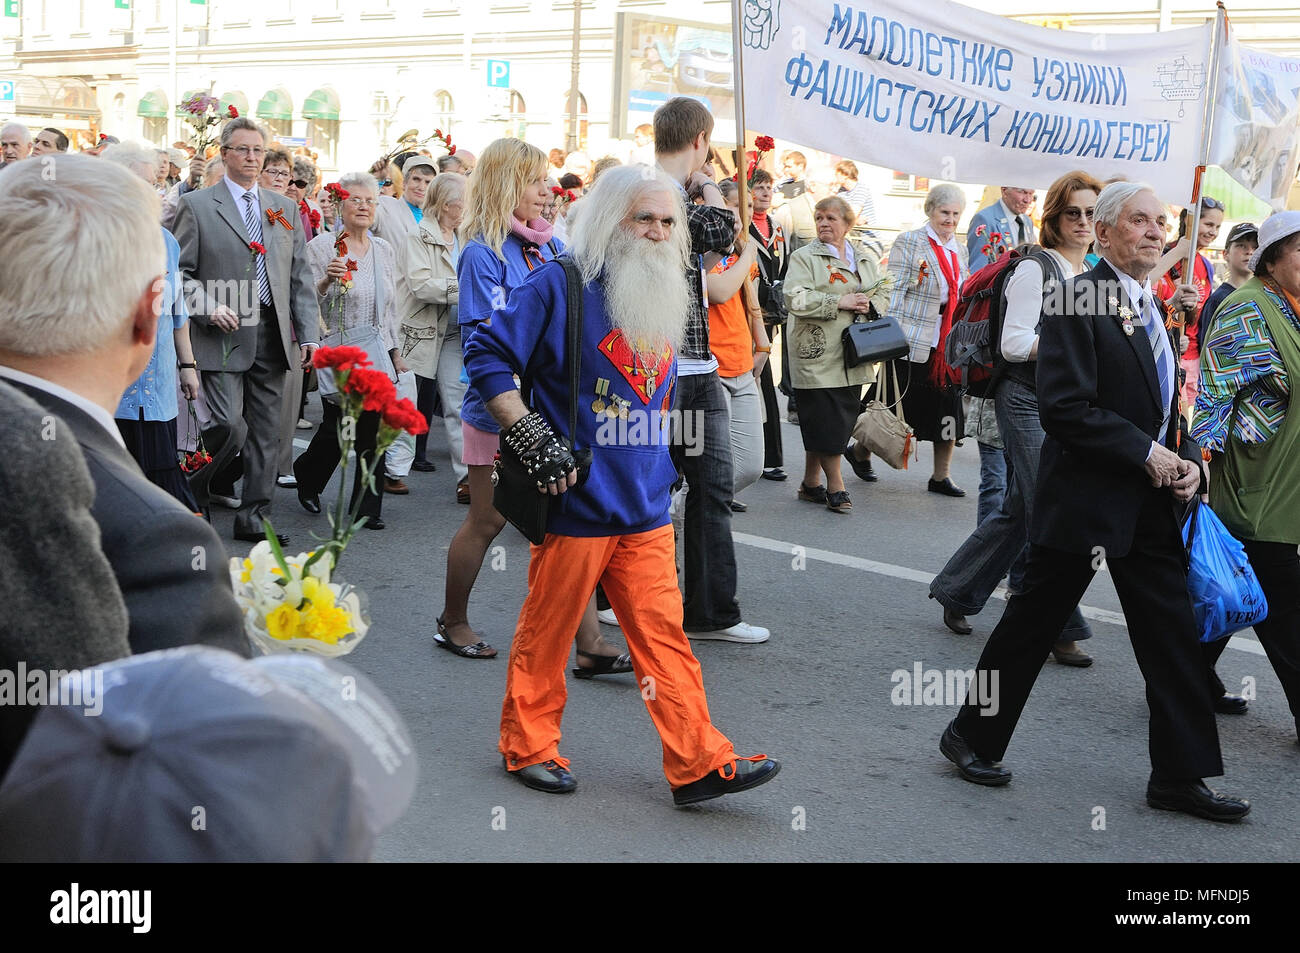 Procession of veterans of World War II on Victory Day,Banner 'Young prisoners of fascist camps' - Stock Image